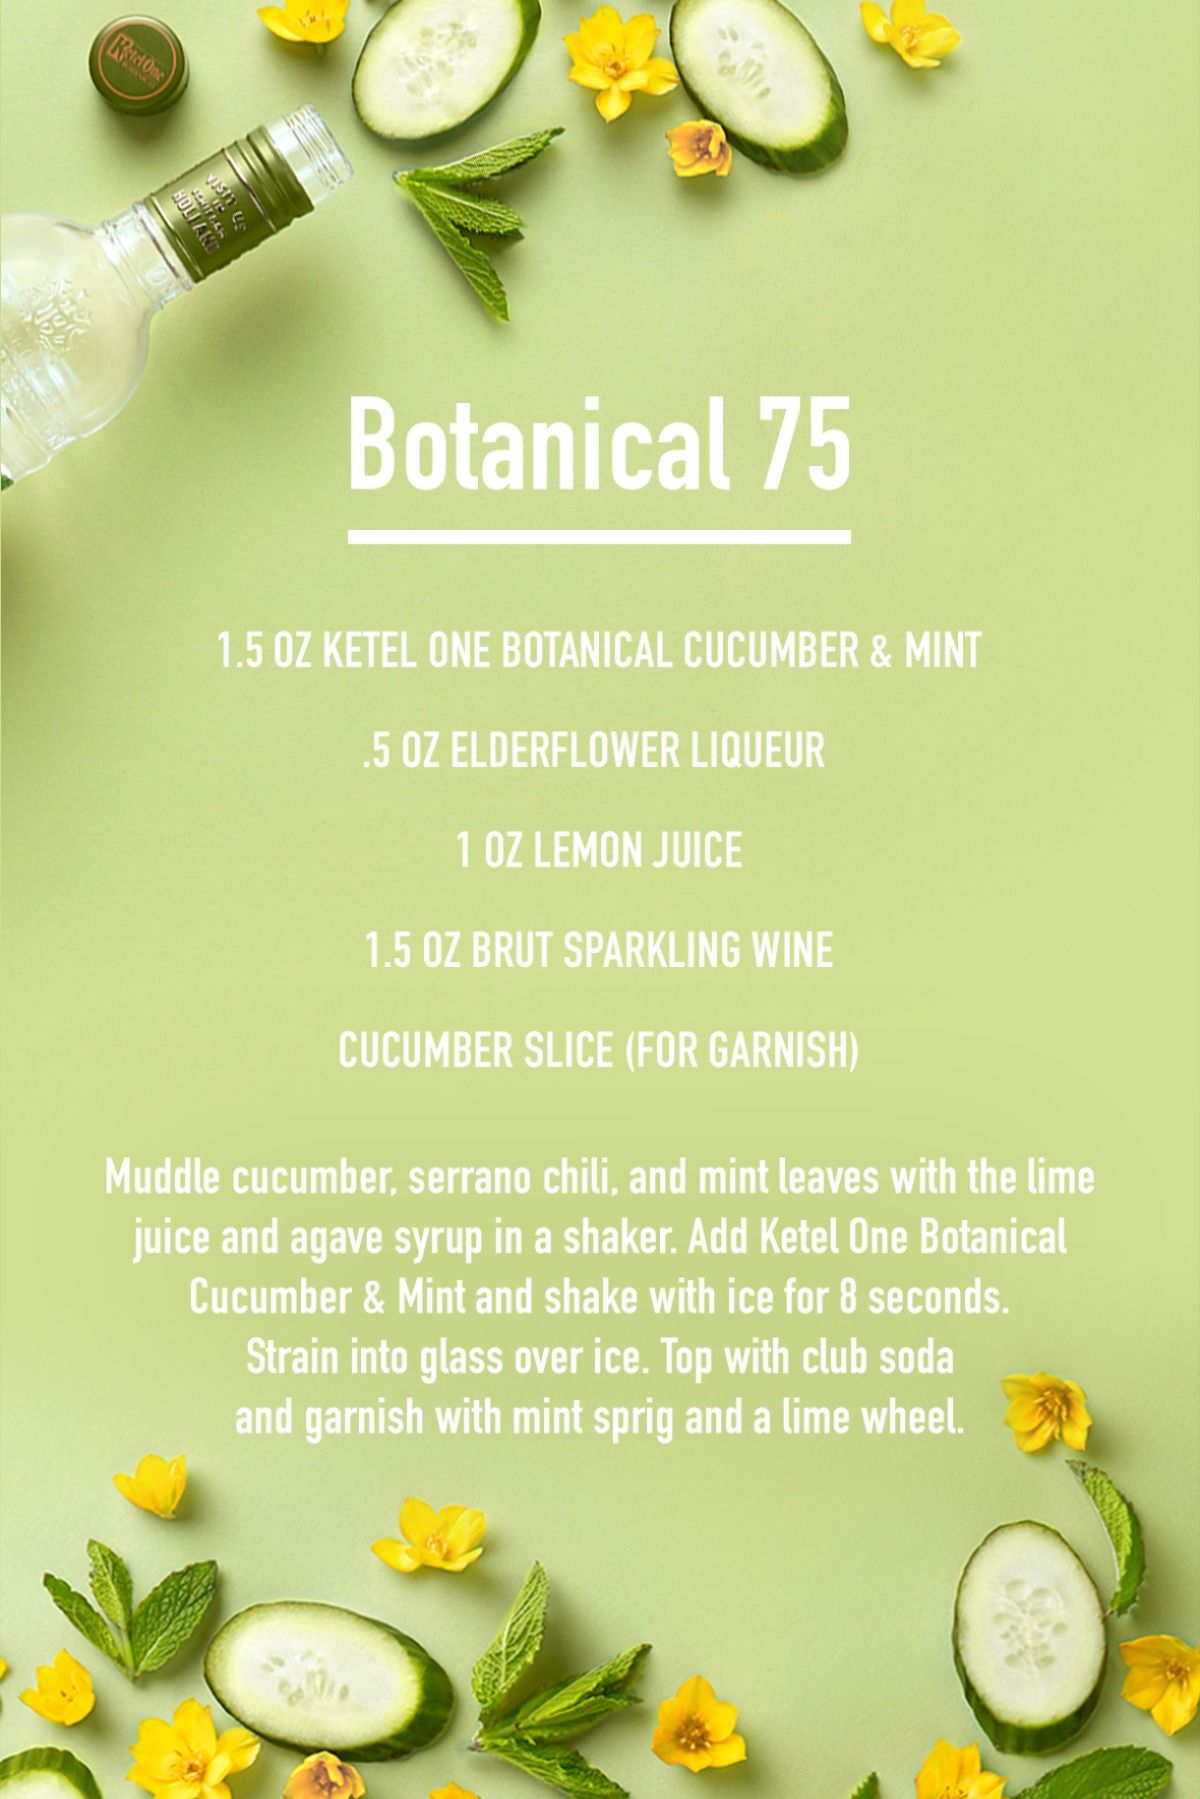 Try a Botanical 75 this holiday season, a festive twist on